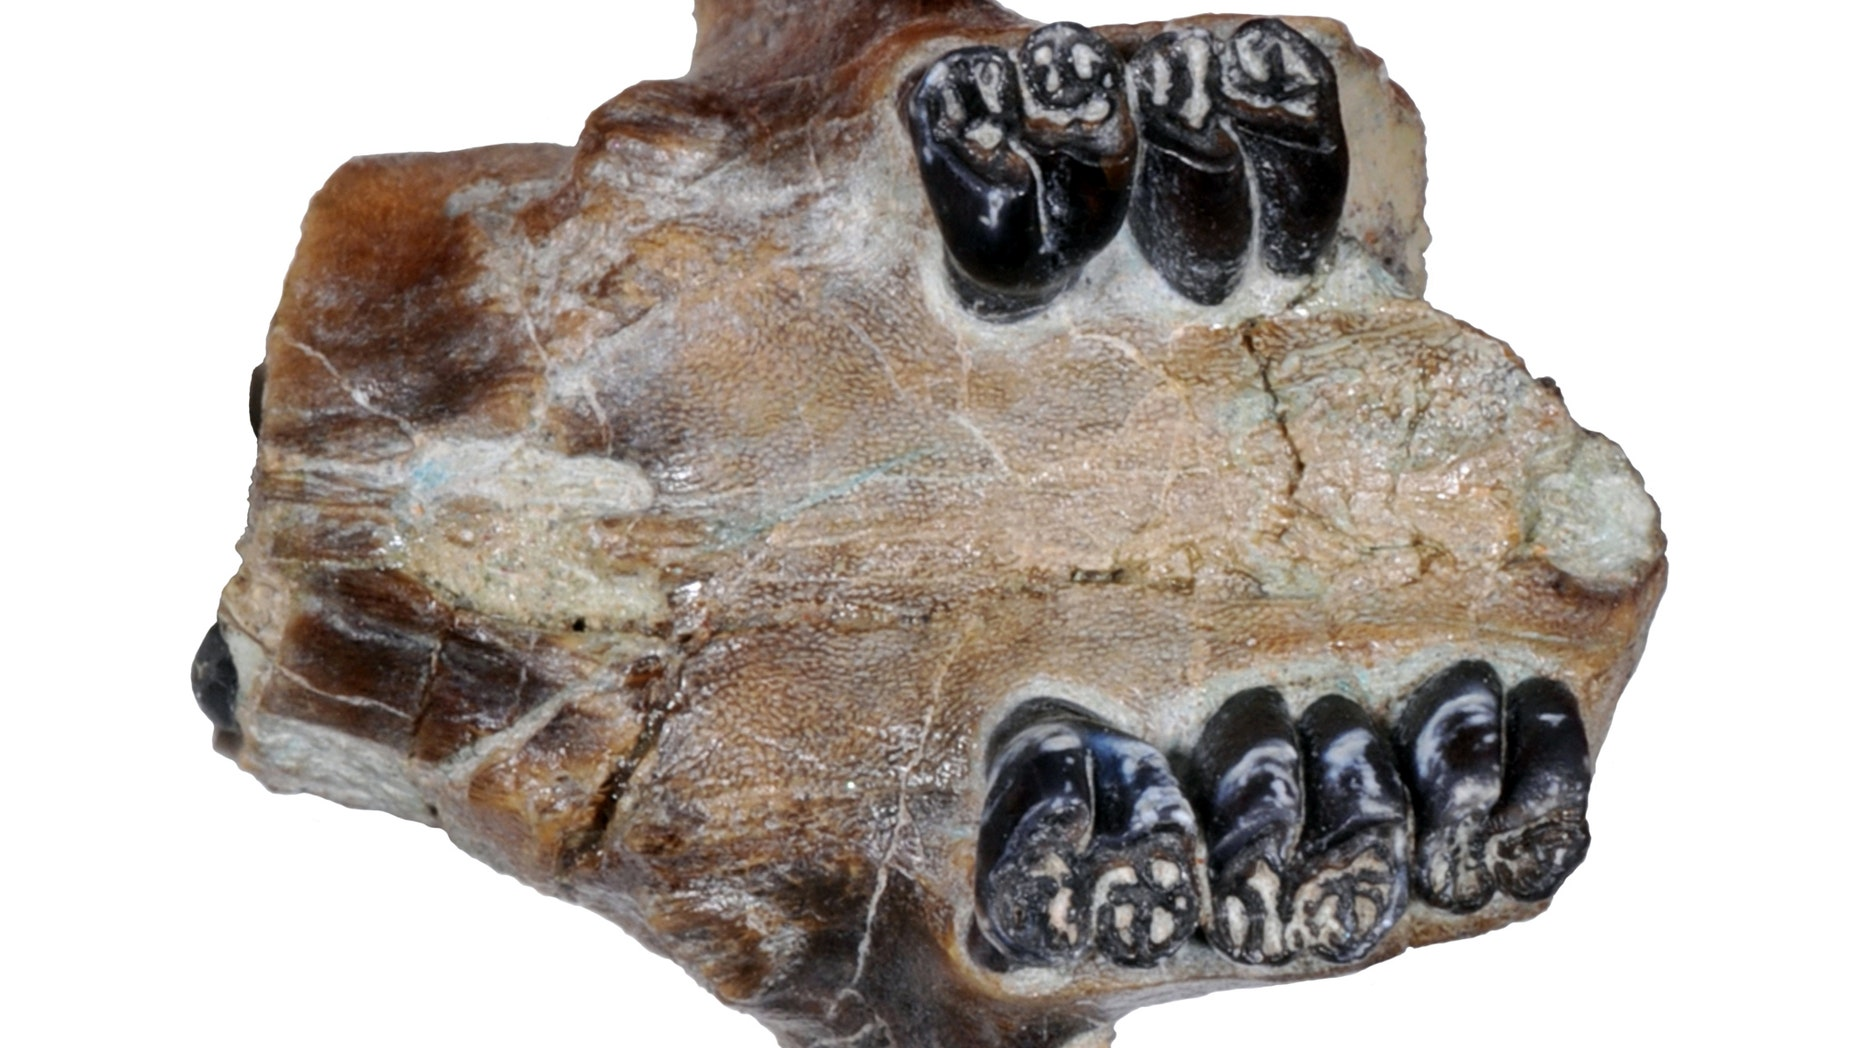 This undated photo provided by John Day Fossil Beds National Monument paleontologist Joshua Samuels in May 2015 shows a portion of the fossilized skull and teeth of an ancient beaver.